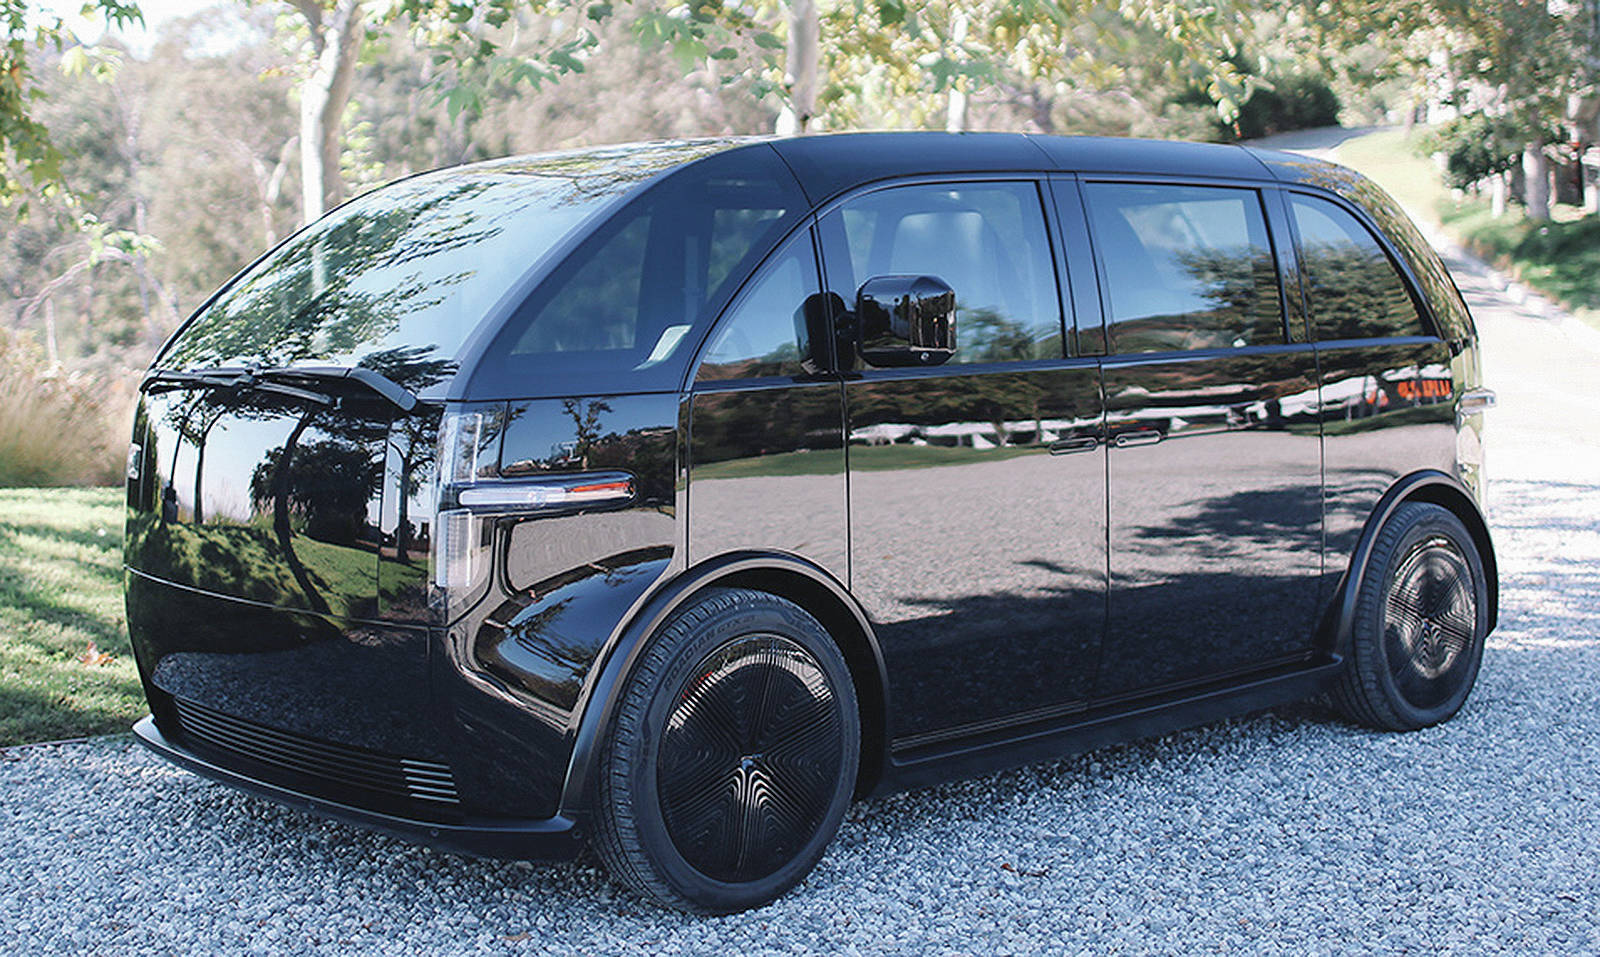 The Canoo minivan is expected to go on sale by late 2021 and with a 250-mile (400-kilometre) maximum range. Note that there are 22 windows. PHOTO: CANOO